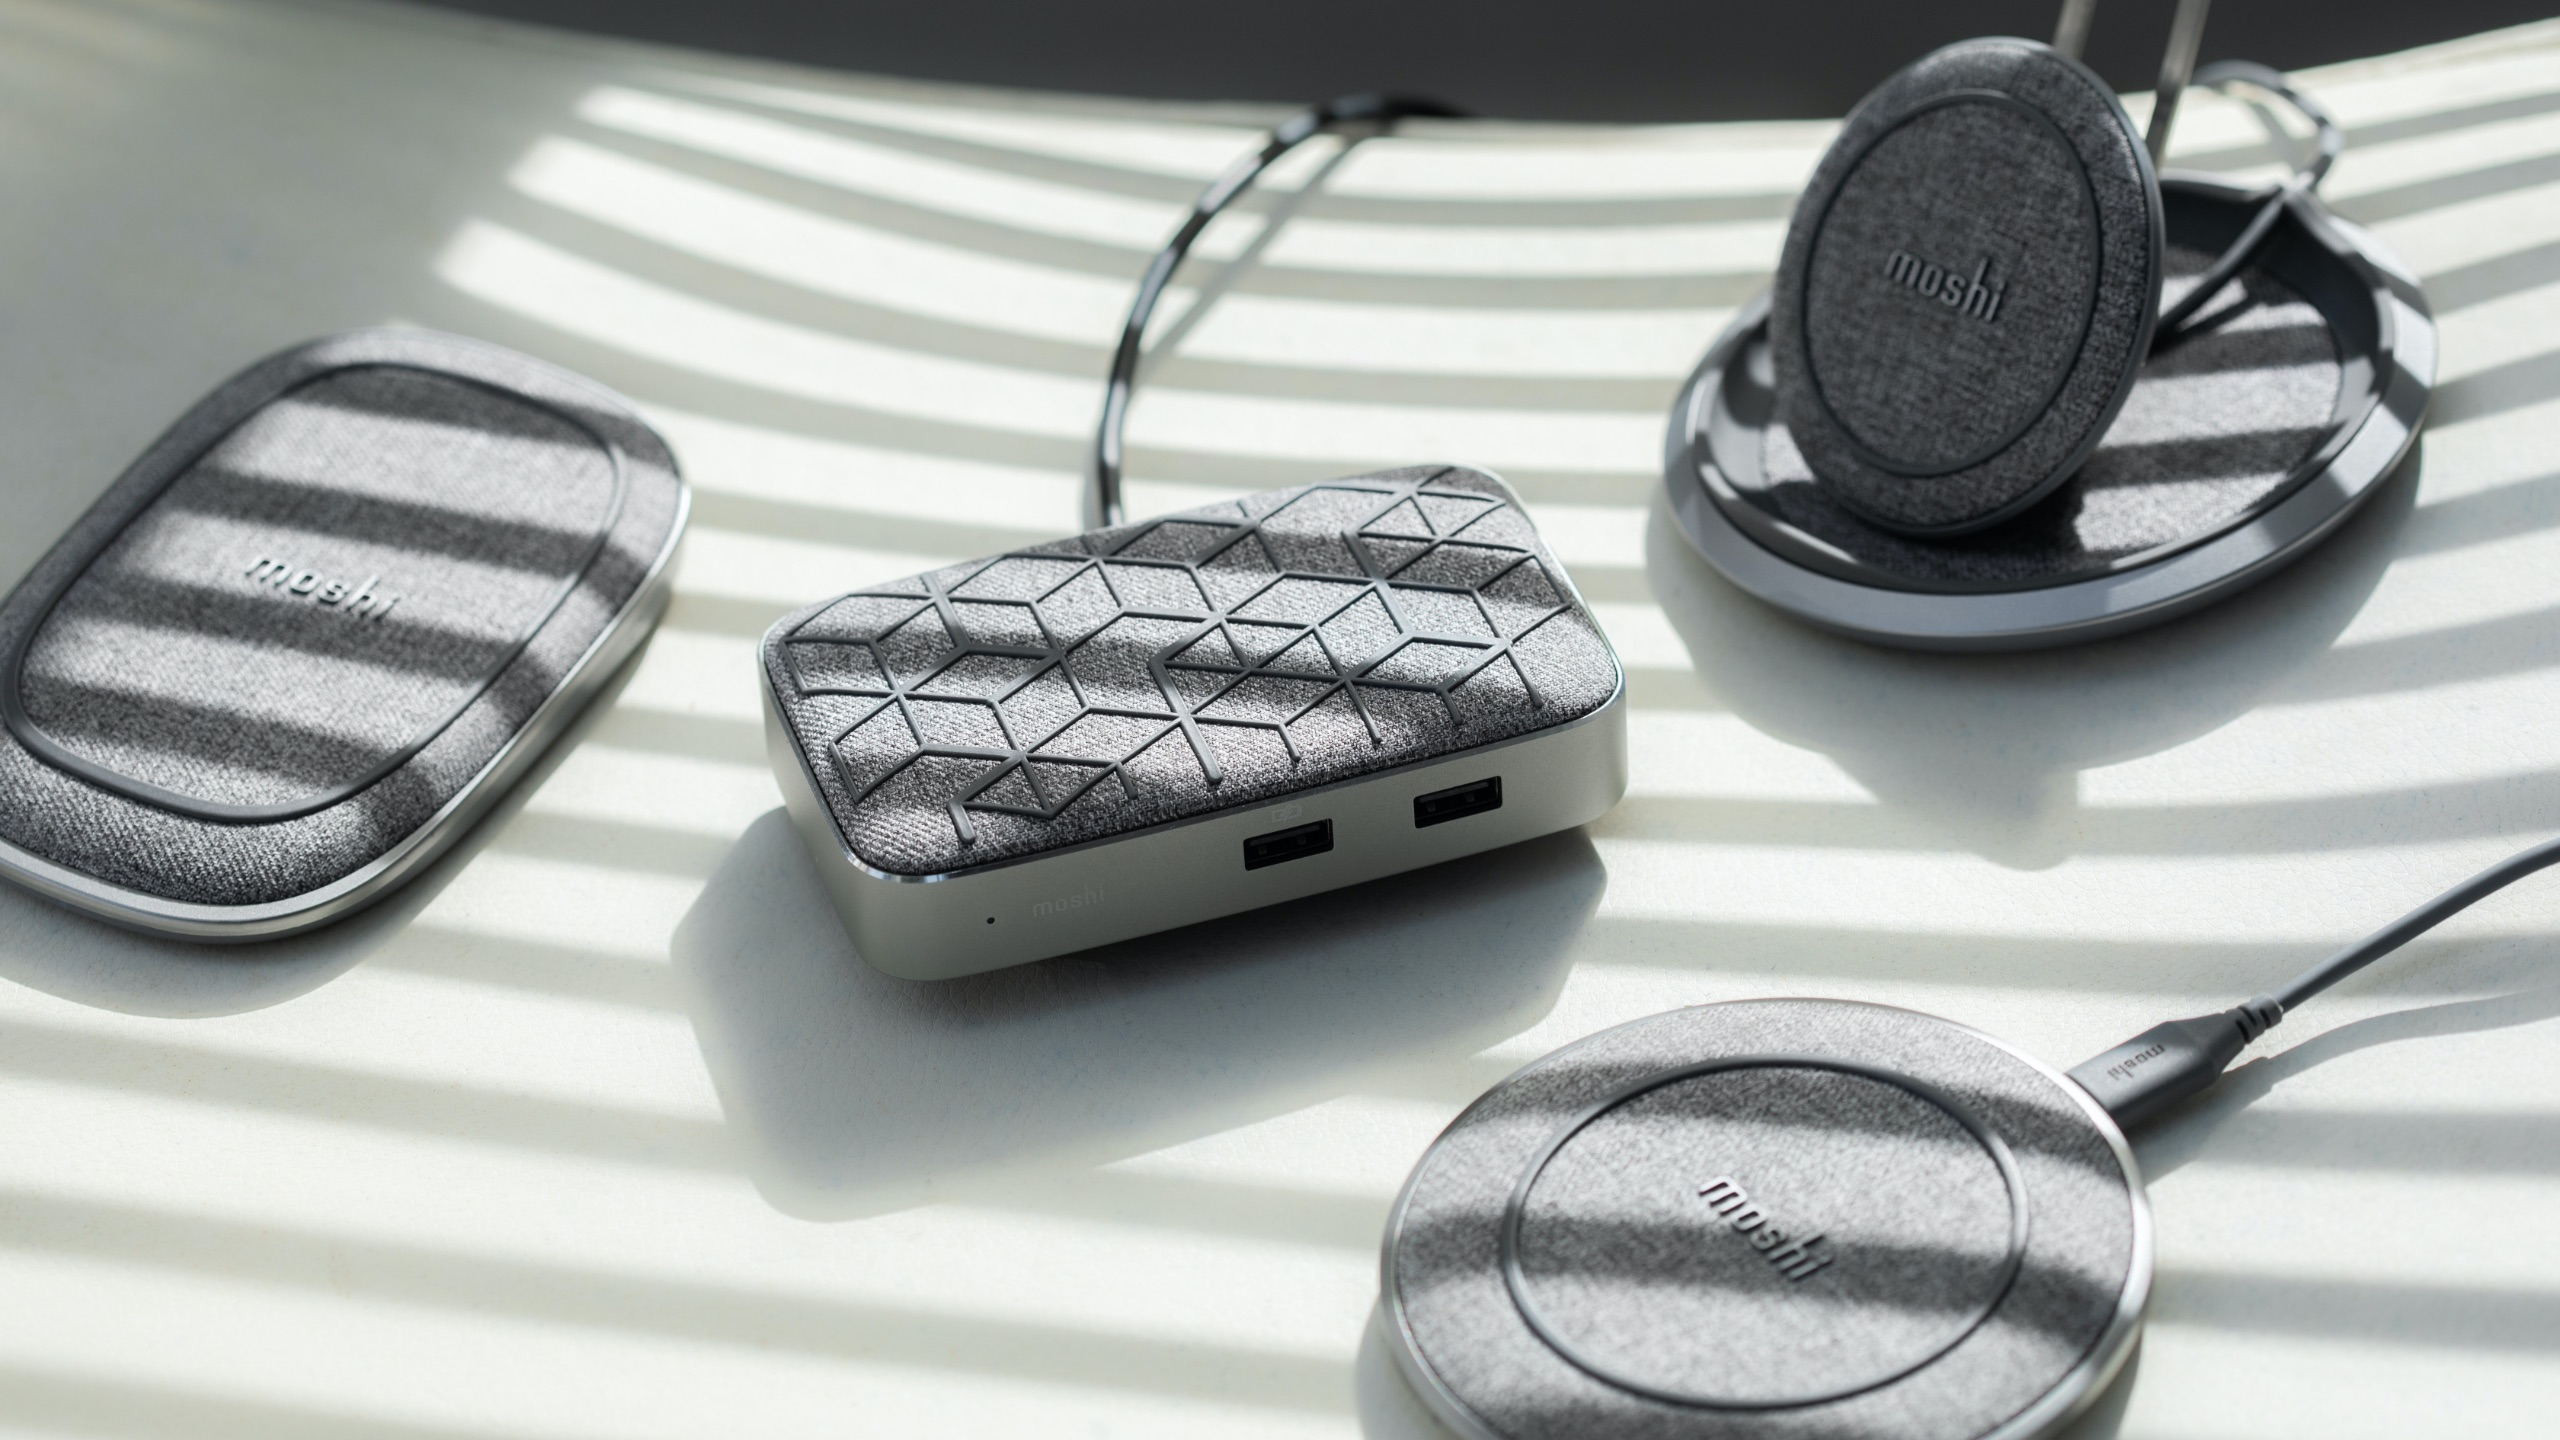 Symbus Q Compact USB-C Dock with Wireless Charging-image